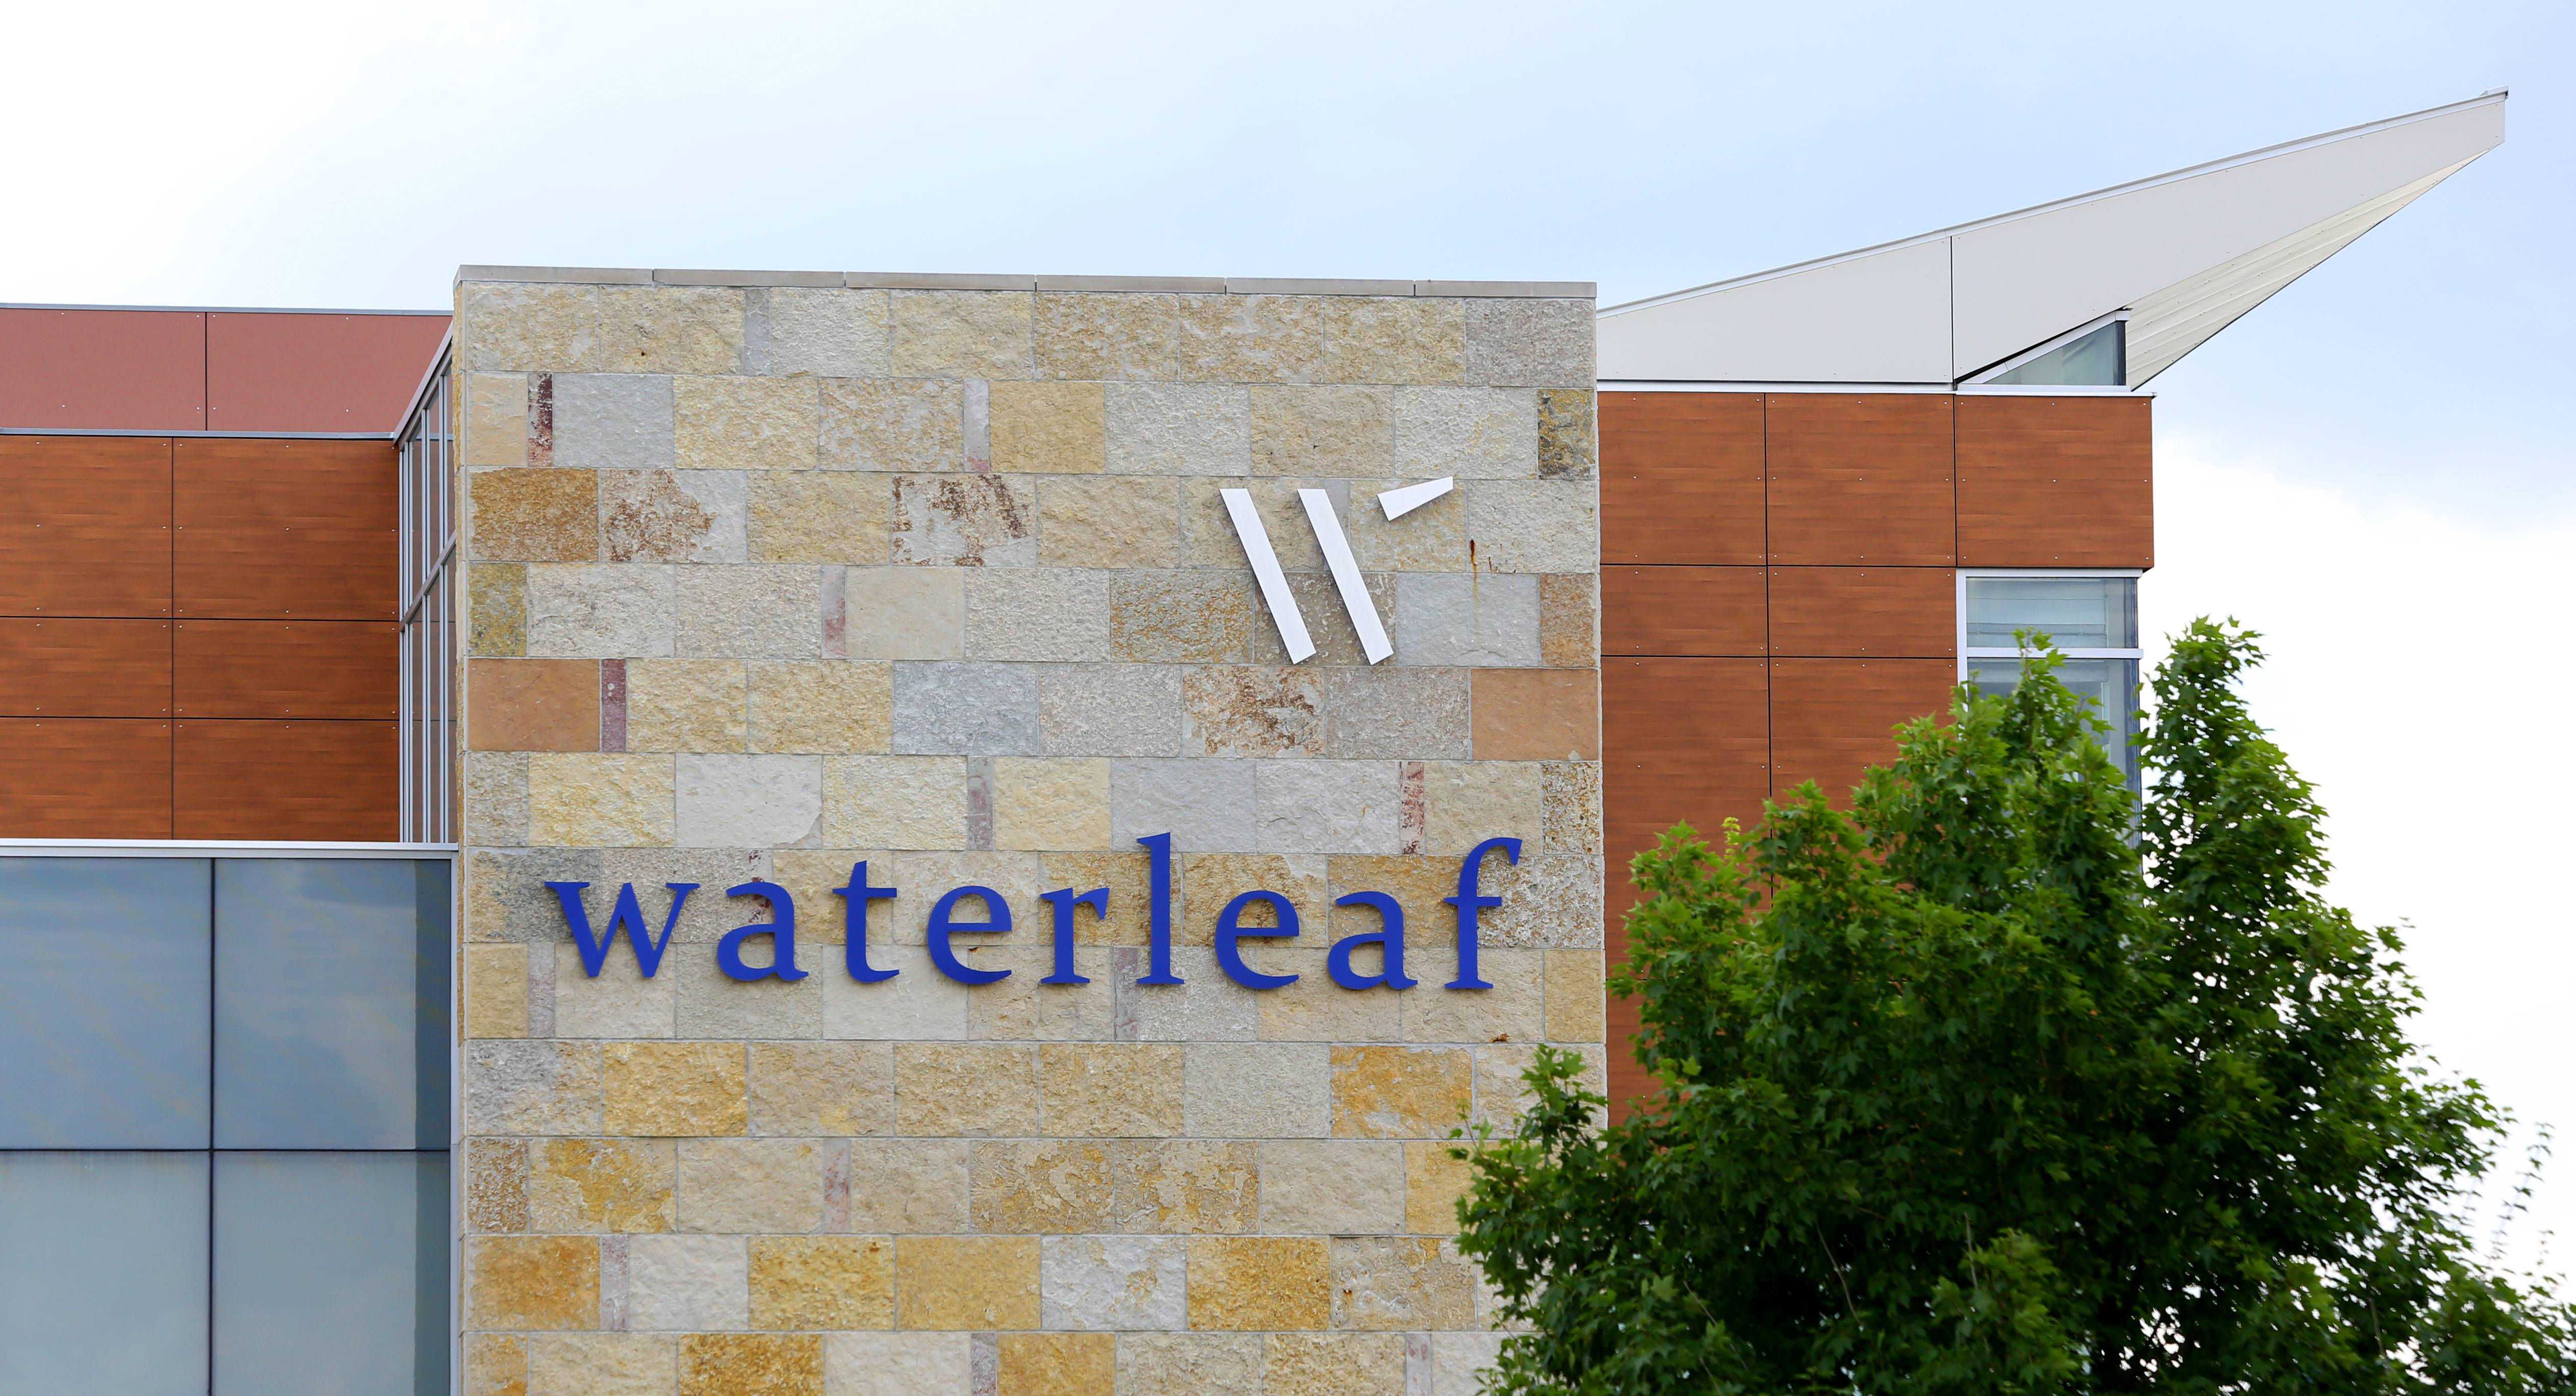 A DuPage County grand jury has subpoenaed spending records of College of DuPage officials at the now-shuttered Waterleaf Restaurant.